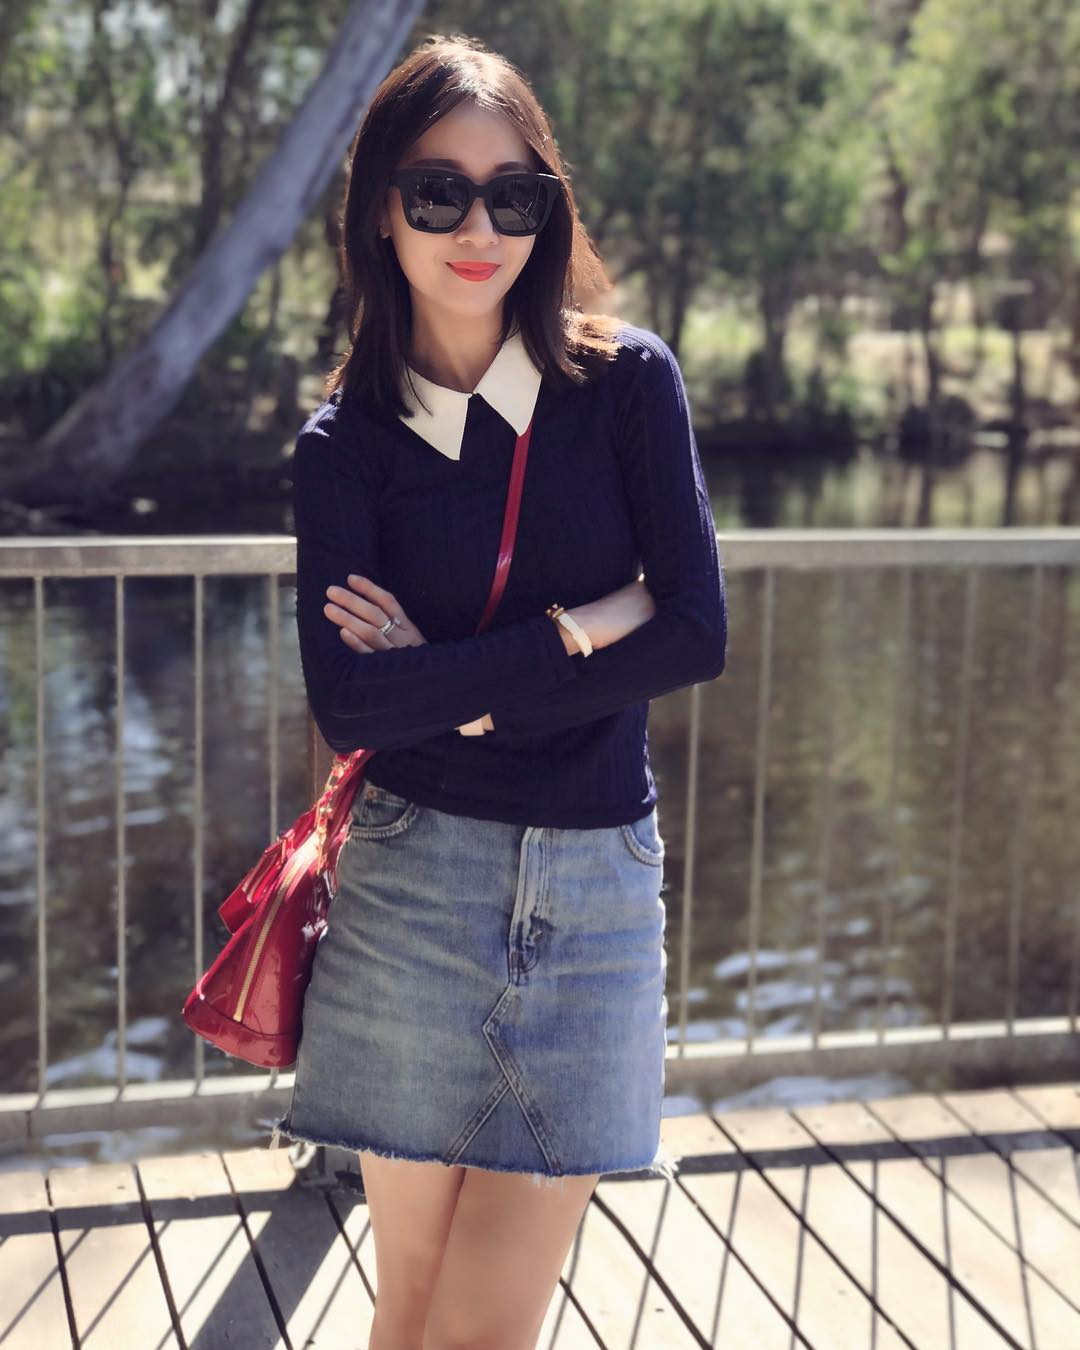 Denim Short Skirt With Plane Sweater